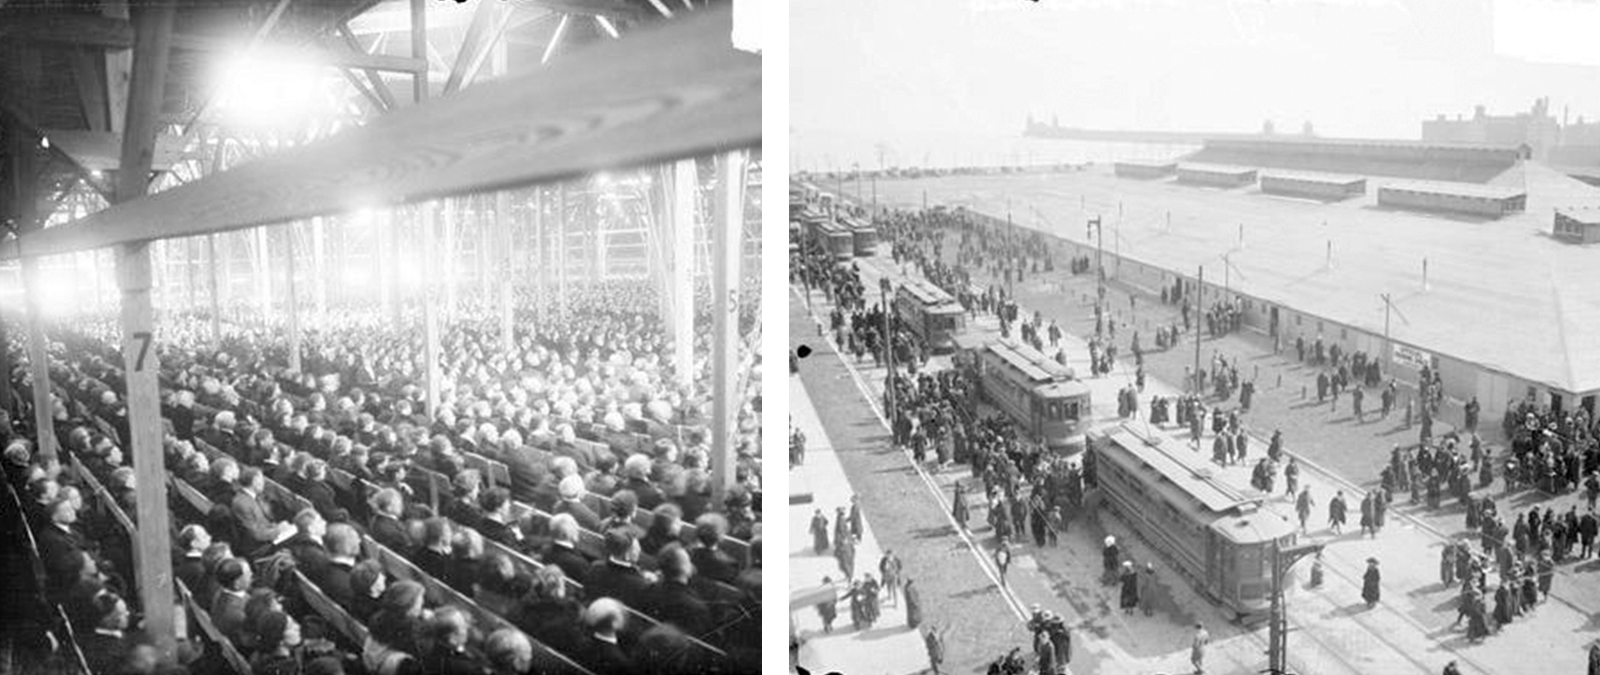 For his 1918 Chicago Crusade, Billy Sunday set up a tabernacle on Chicago Avenue near Lake Michigan that reportedly held up to 16,000 people at a time. (Courtesy Chicago History Museum)